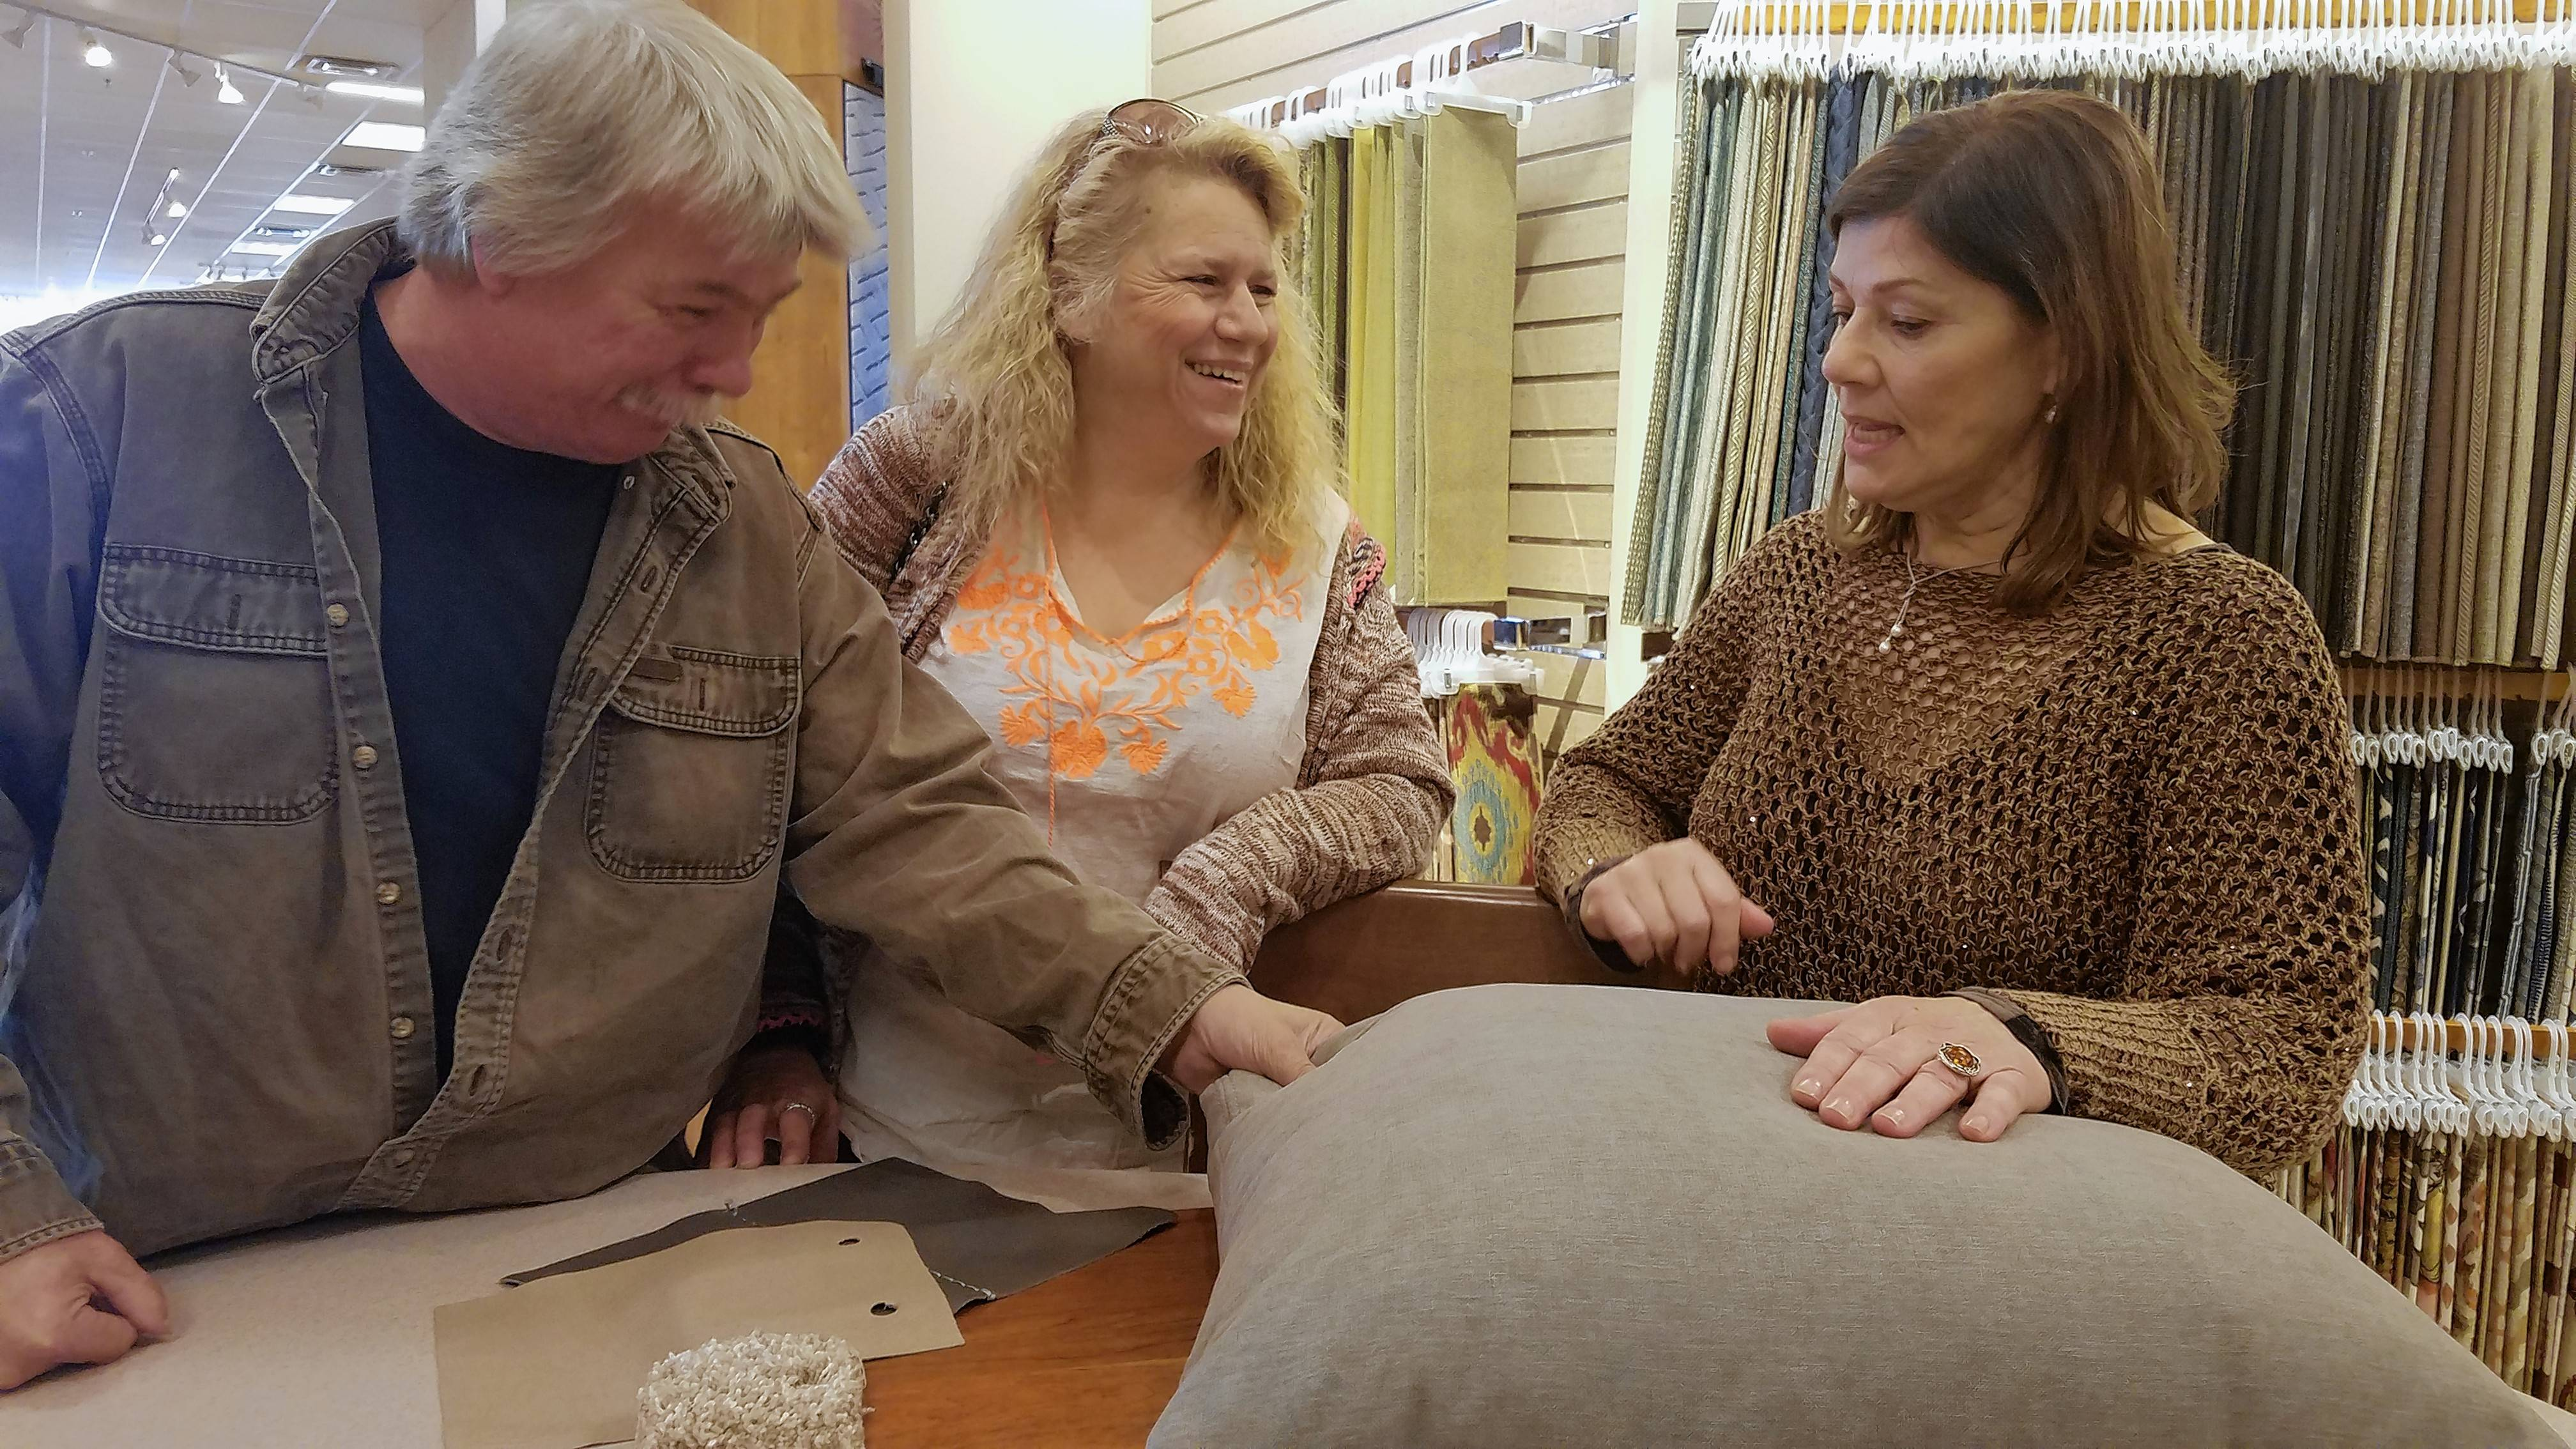 Amy and Harry Walters of Round Lake discuss fabric choices for a sectional with Steinhafels furniture design consultant Andrea Odishoo, right.